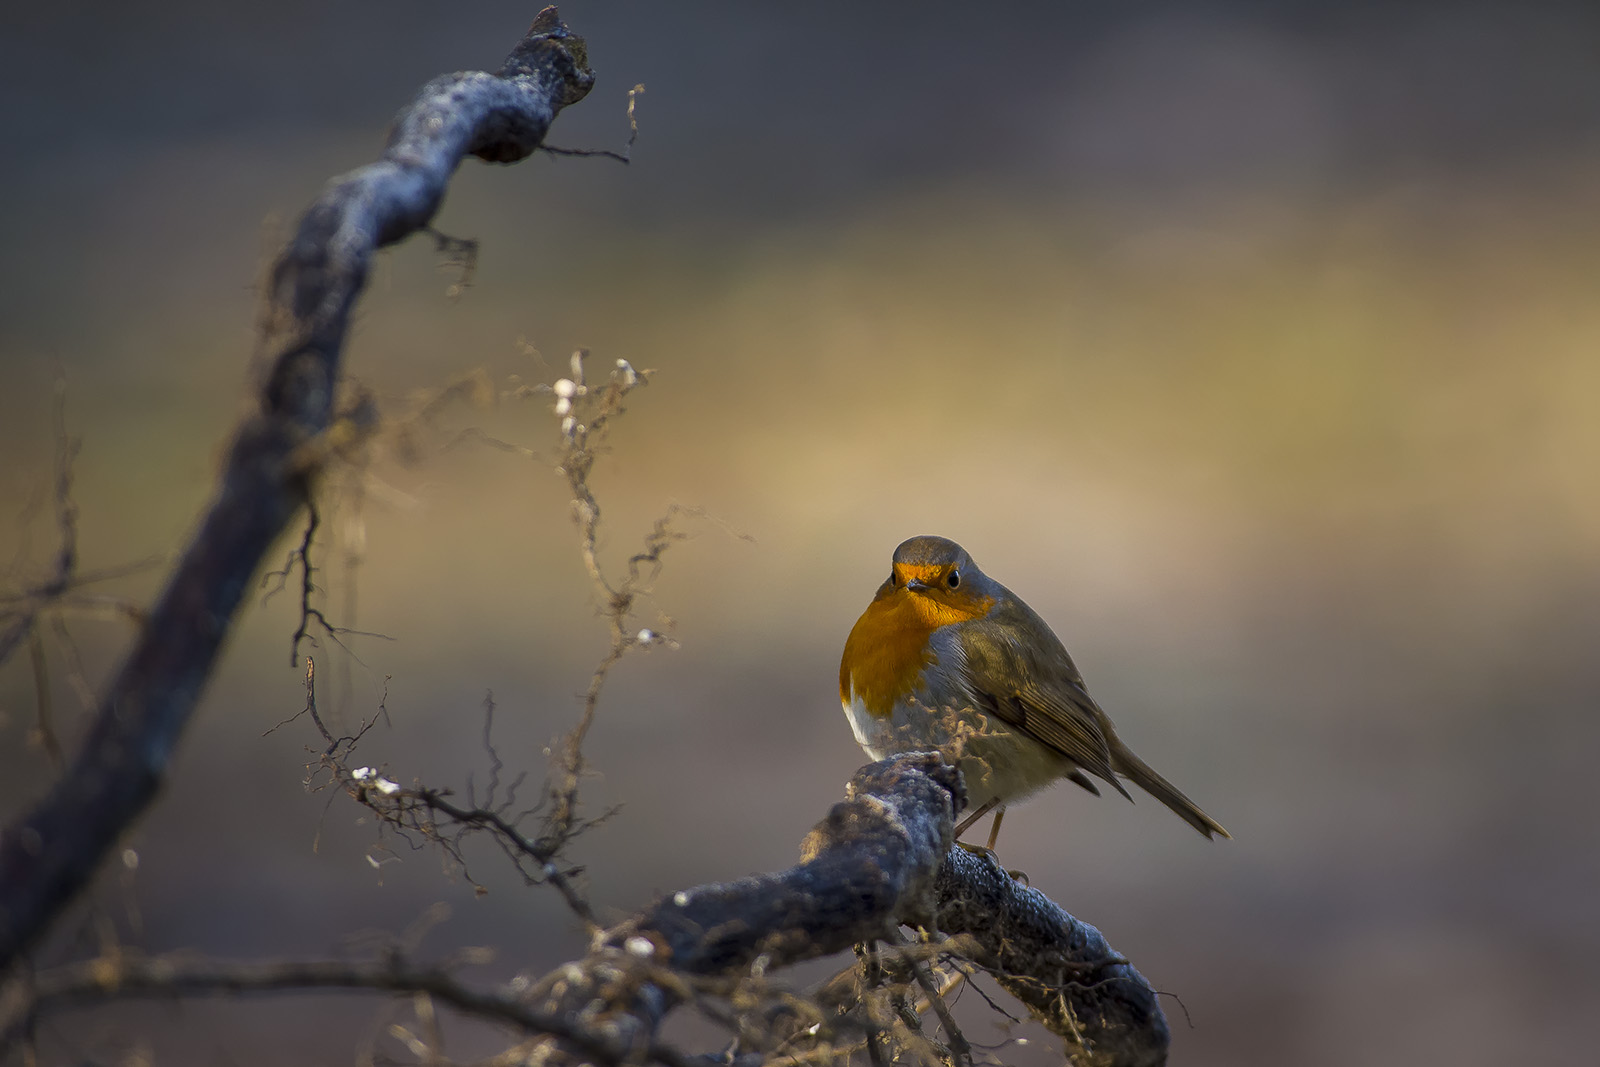 Erithacus rubecula – Robin in the magic forest